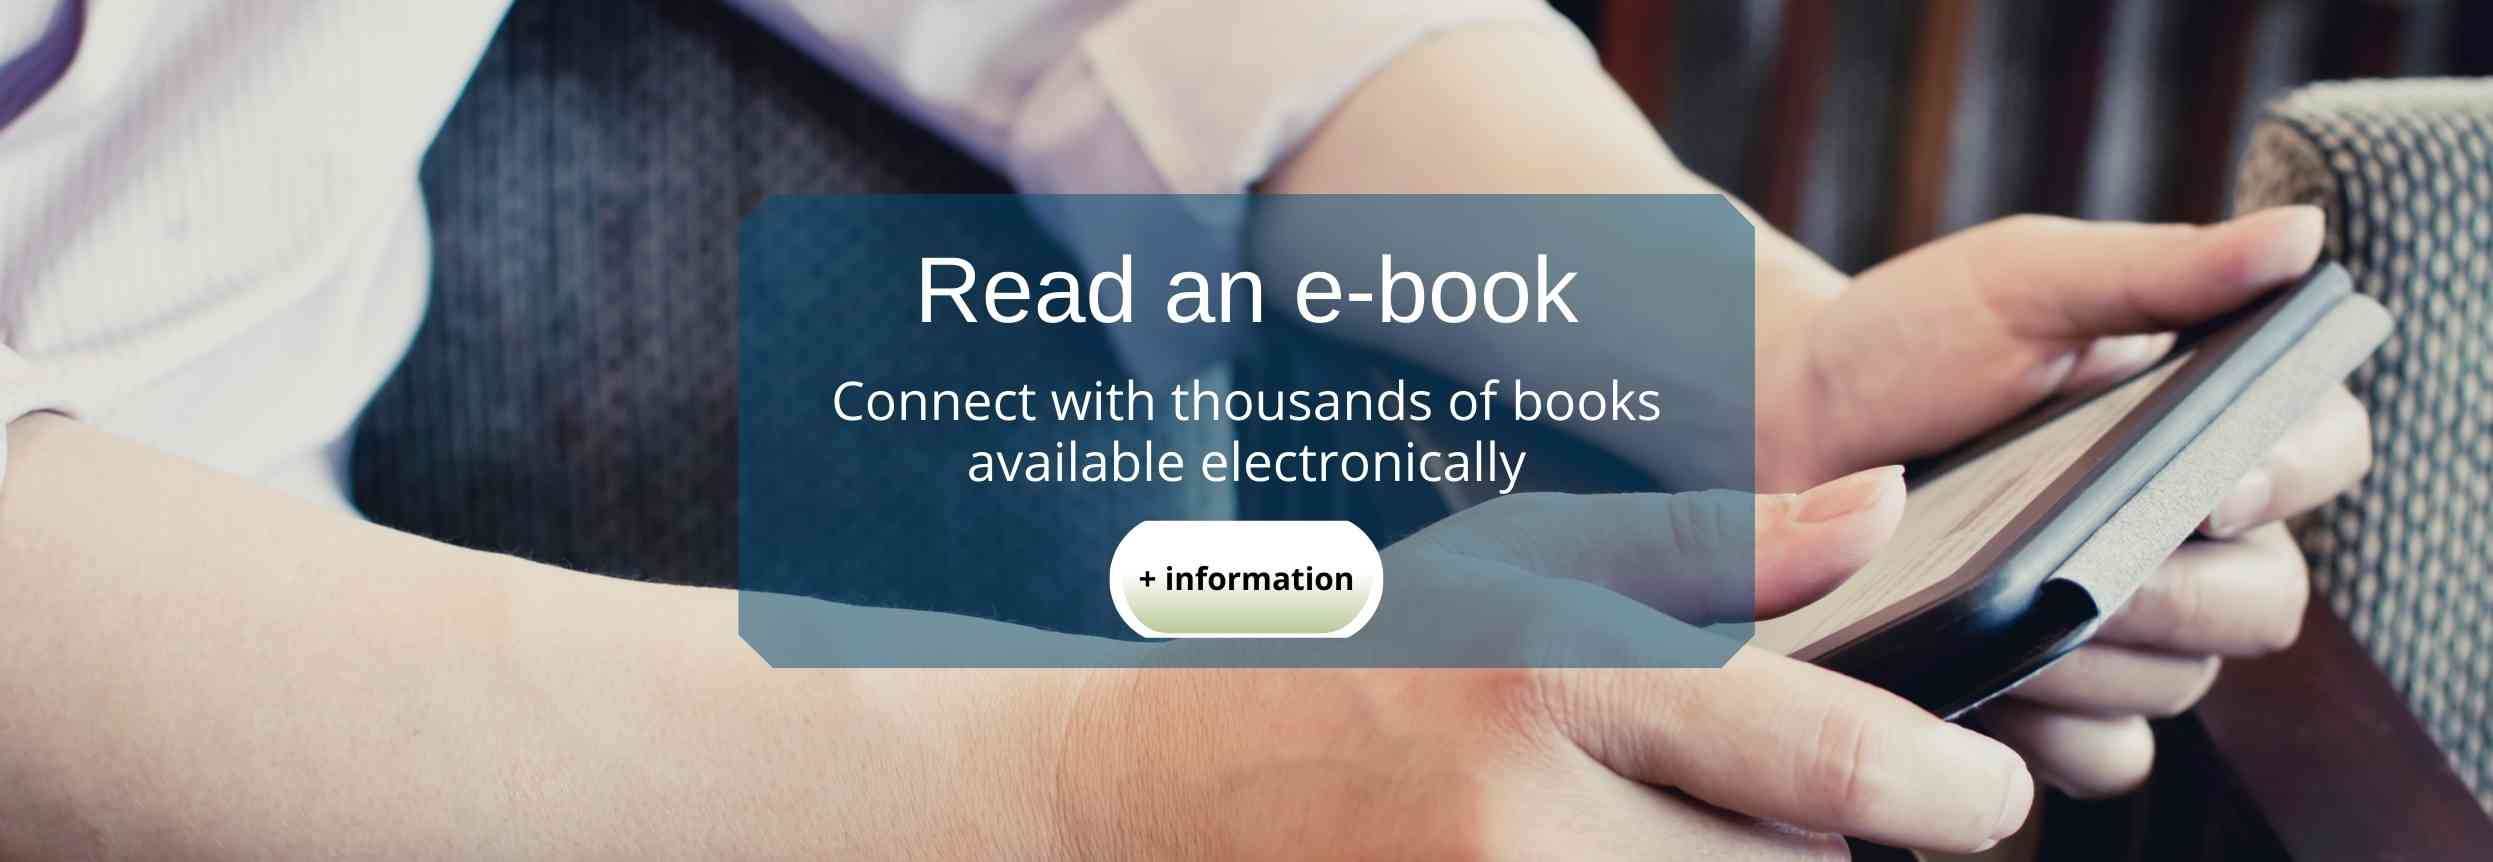 Find an e-book to read